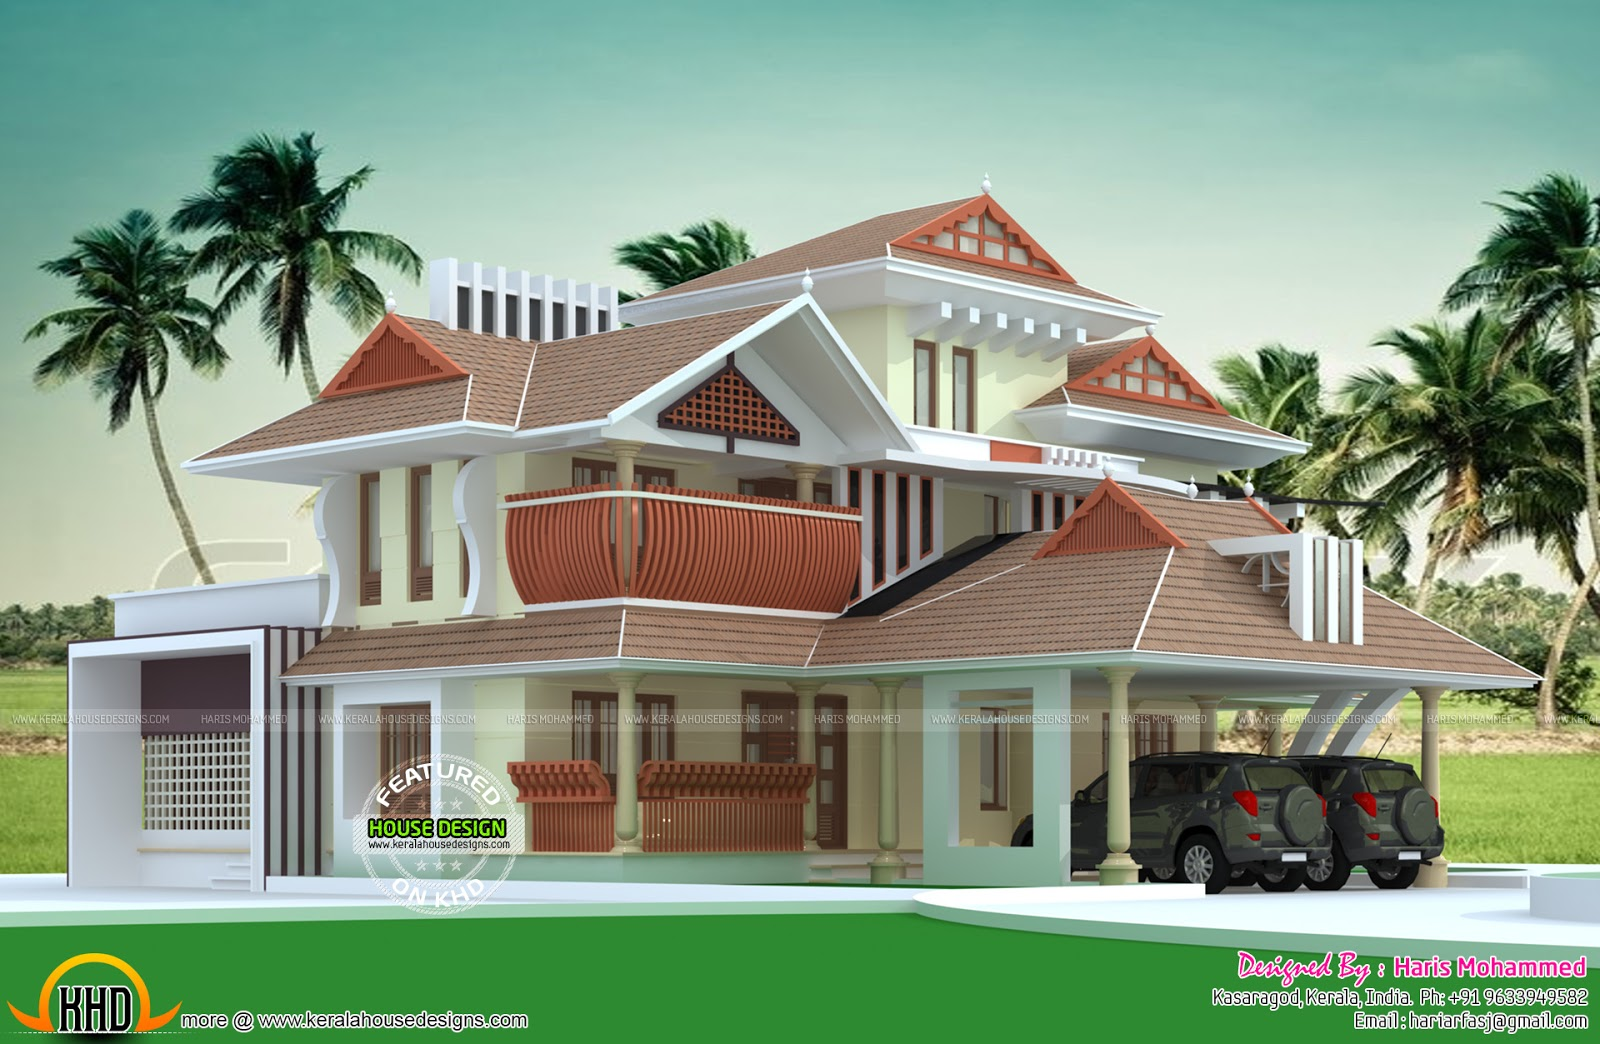 New traditional vastu based kerala home design kerala for New home designs kerala